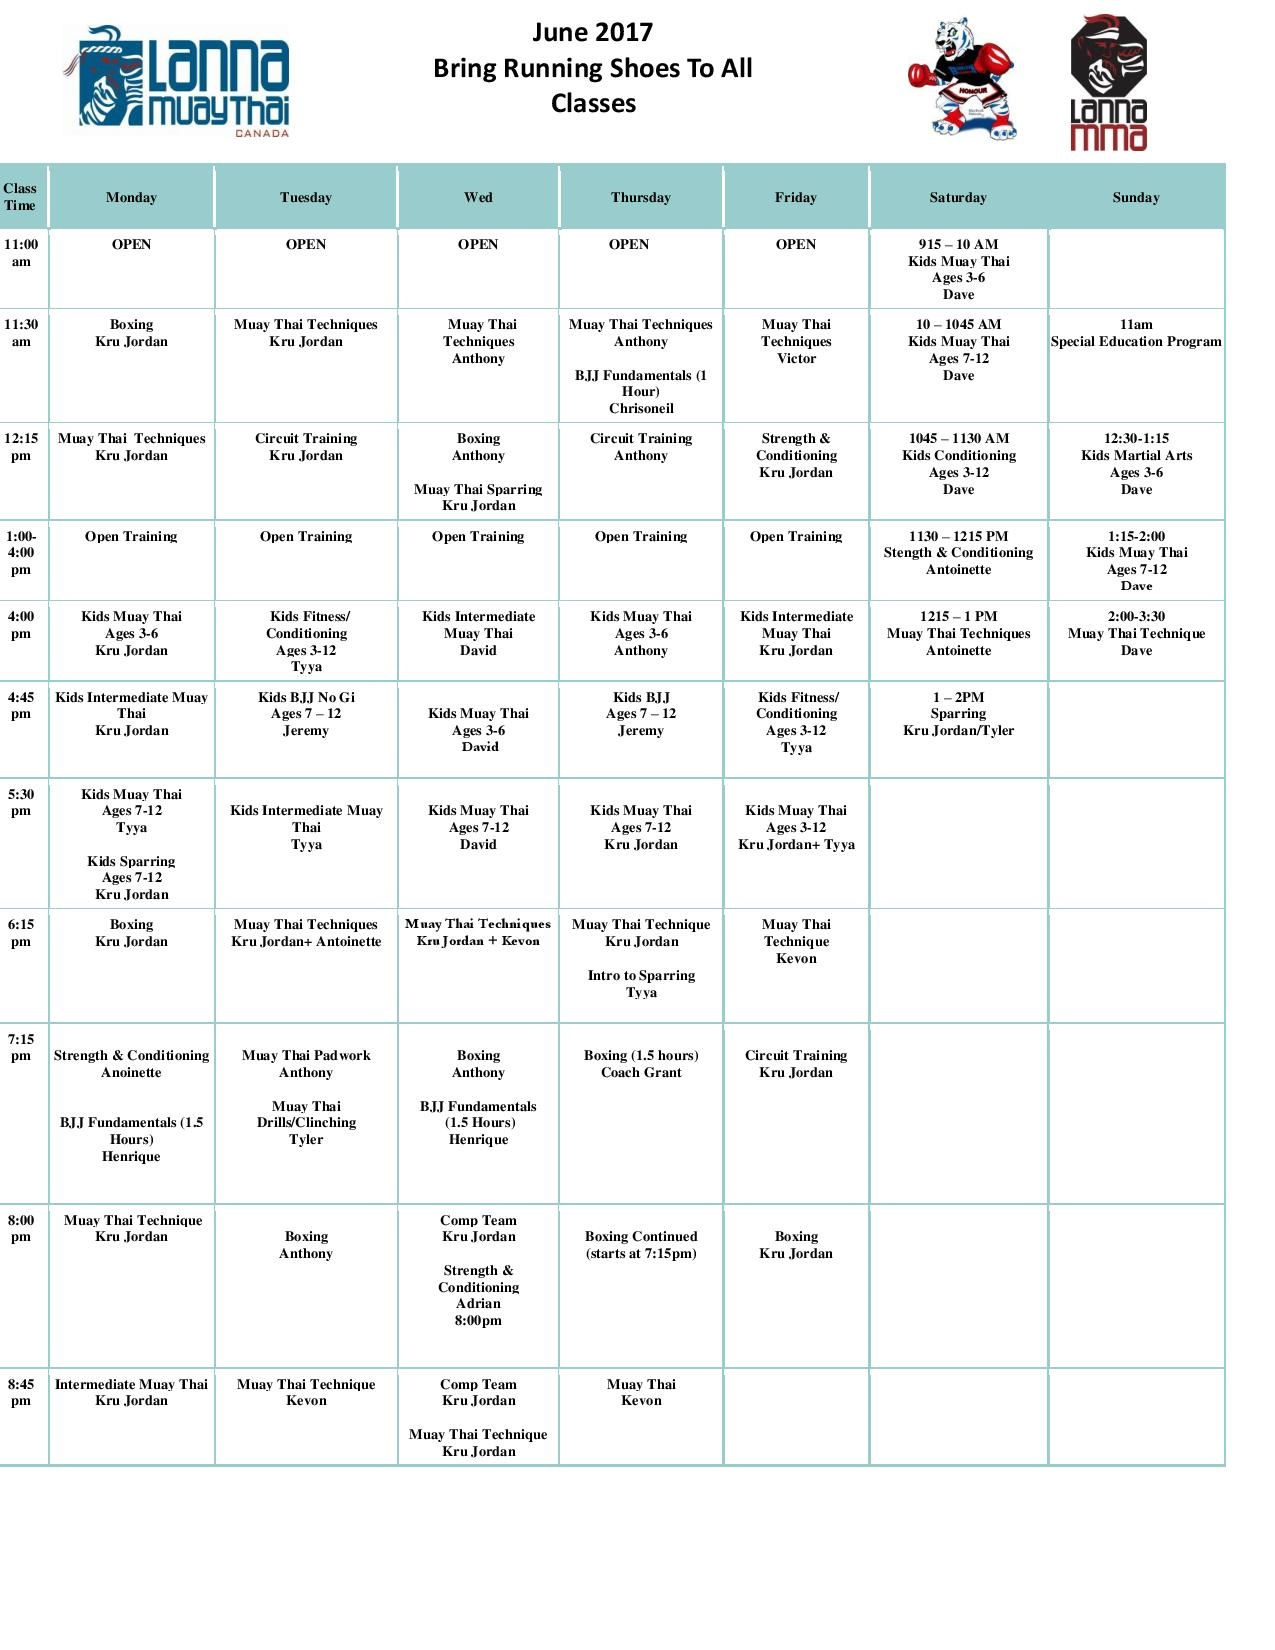 June Muay Thai Kickboxing, Boxing, BJJ, MMA, Kids Martial Arts, and Fitness Training Schedule